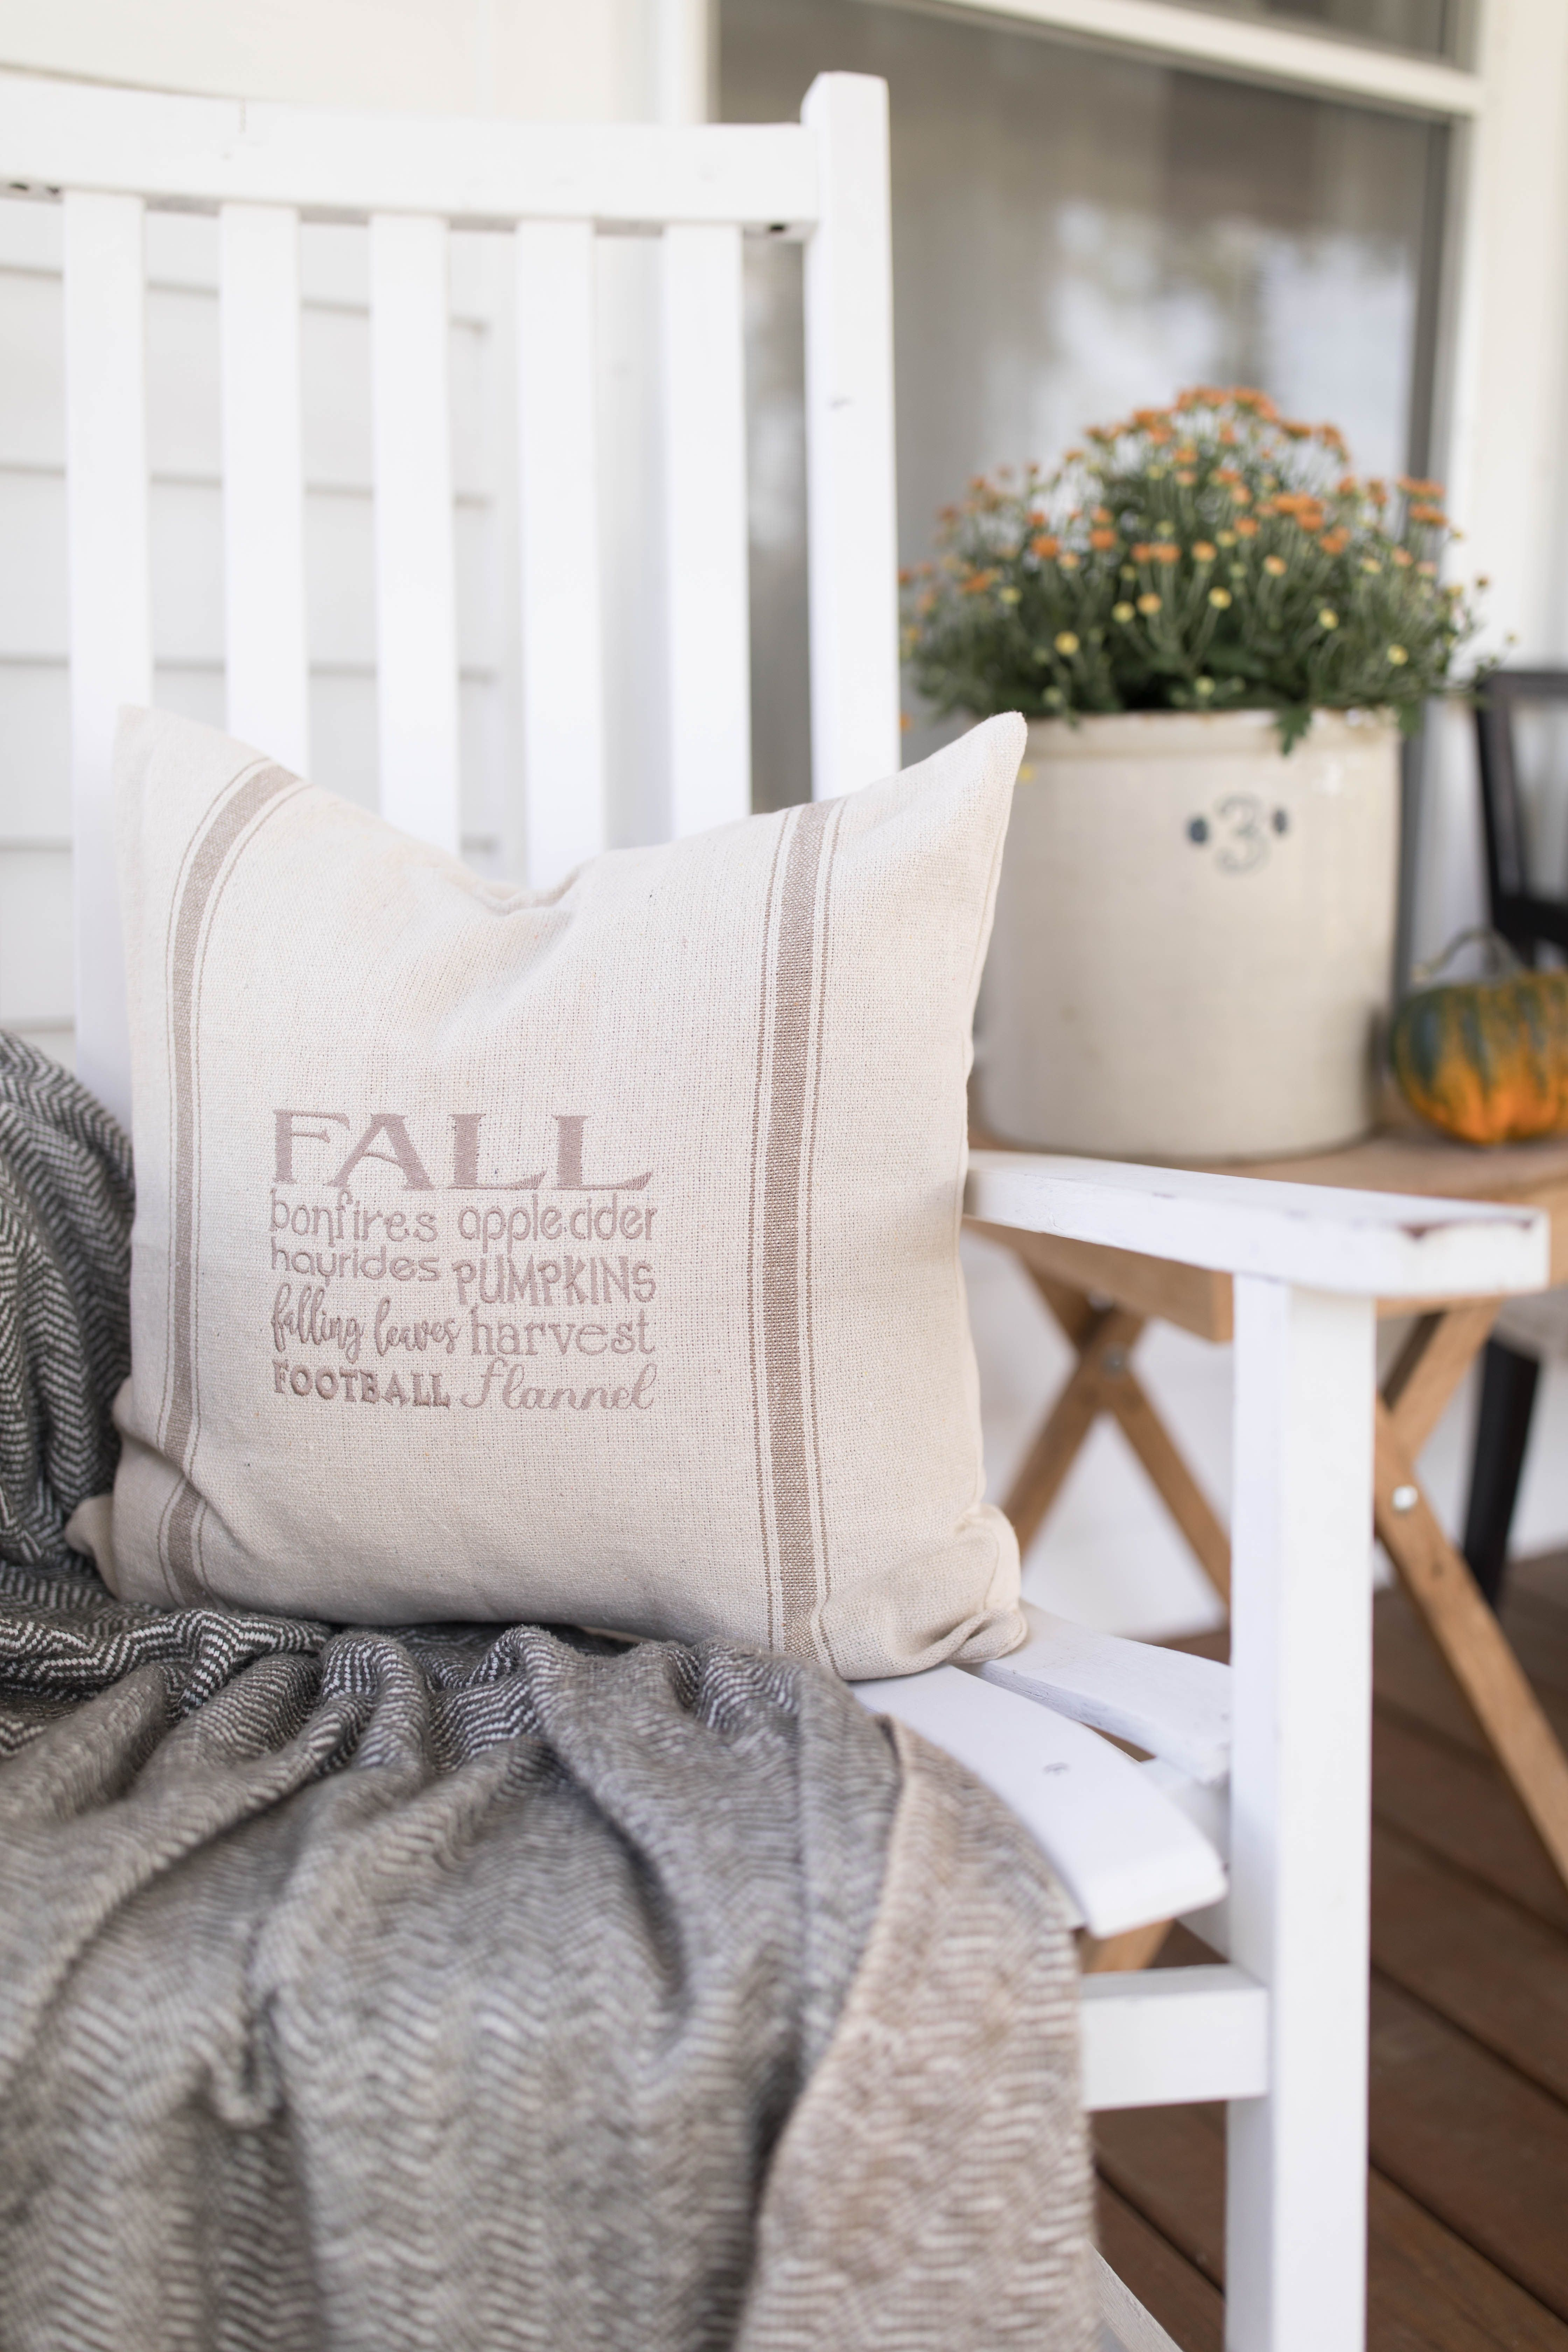 Fall favorites grain sack pillow cover available in blue tan